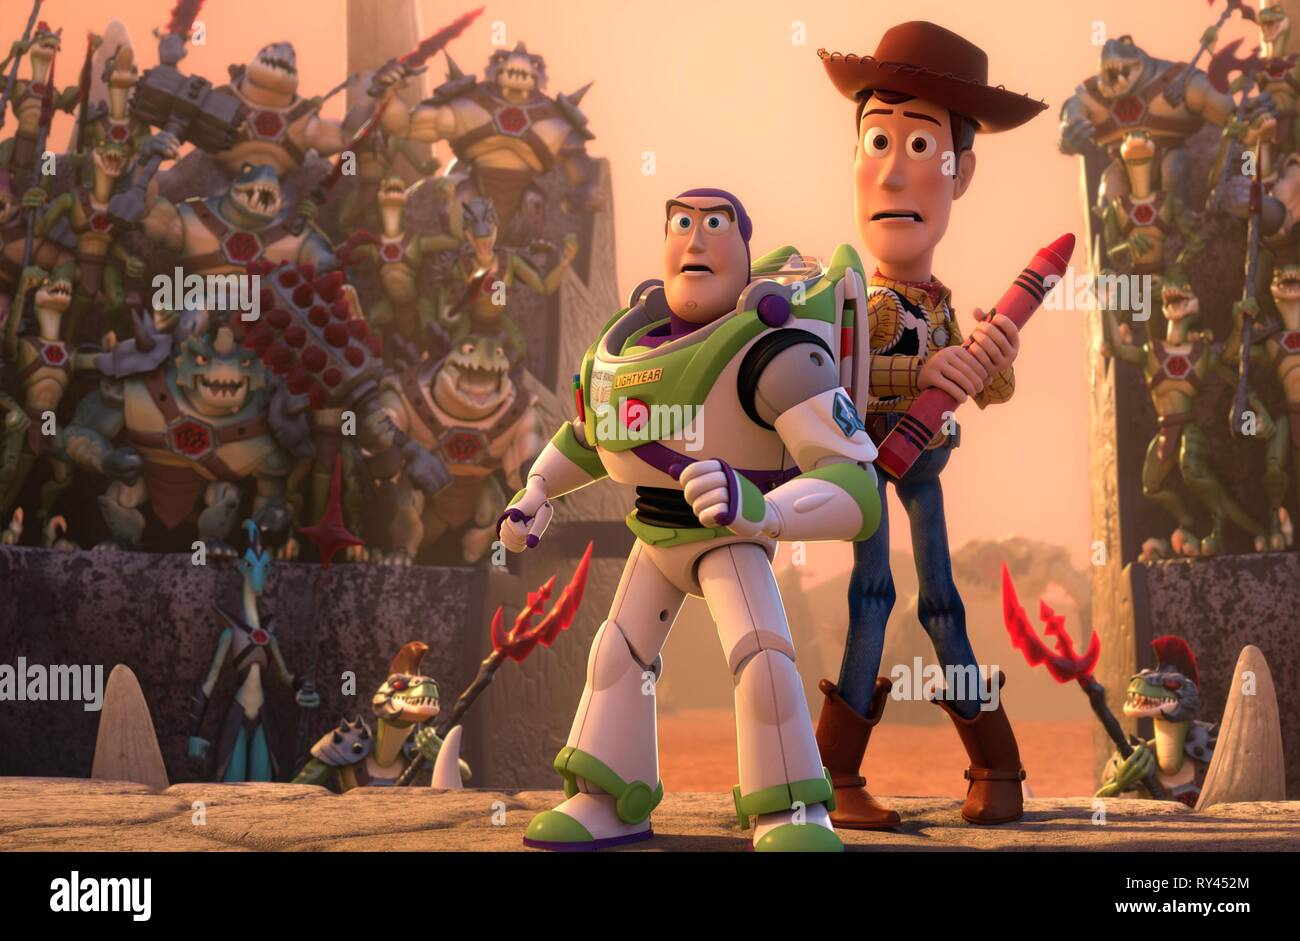 LIGHTYEAR,WOODY, TOY STORY THAT TIME FORGOT, 2014 - Stock Image